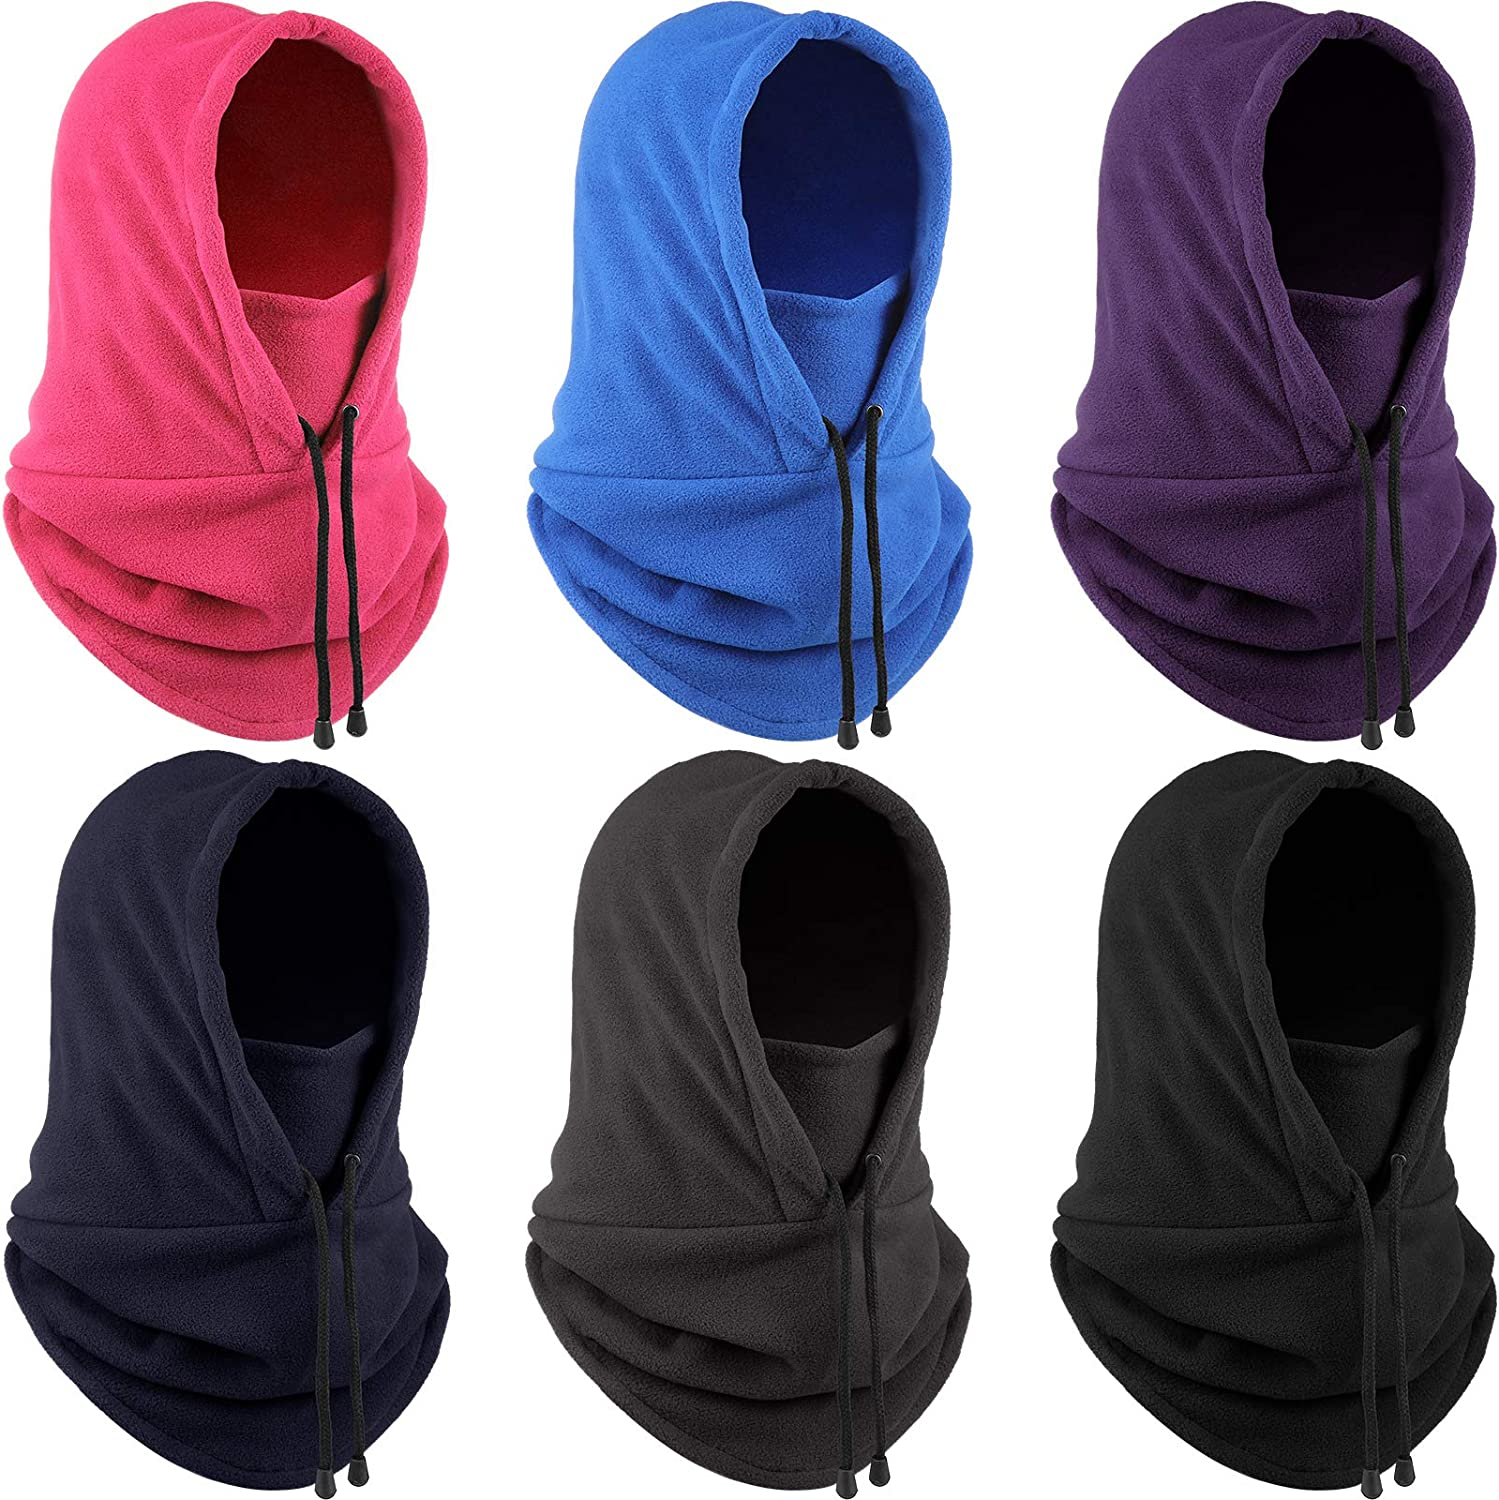 6 Pieces Warm Fleece Balaclava Ski Face Covering Neck Warmer Gaiter Winter Sports Cap for Motorcycle Cycling Running Outdoor Sports